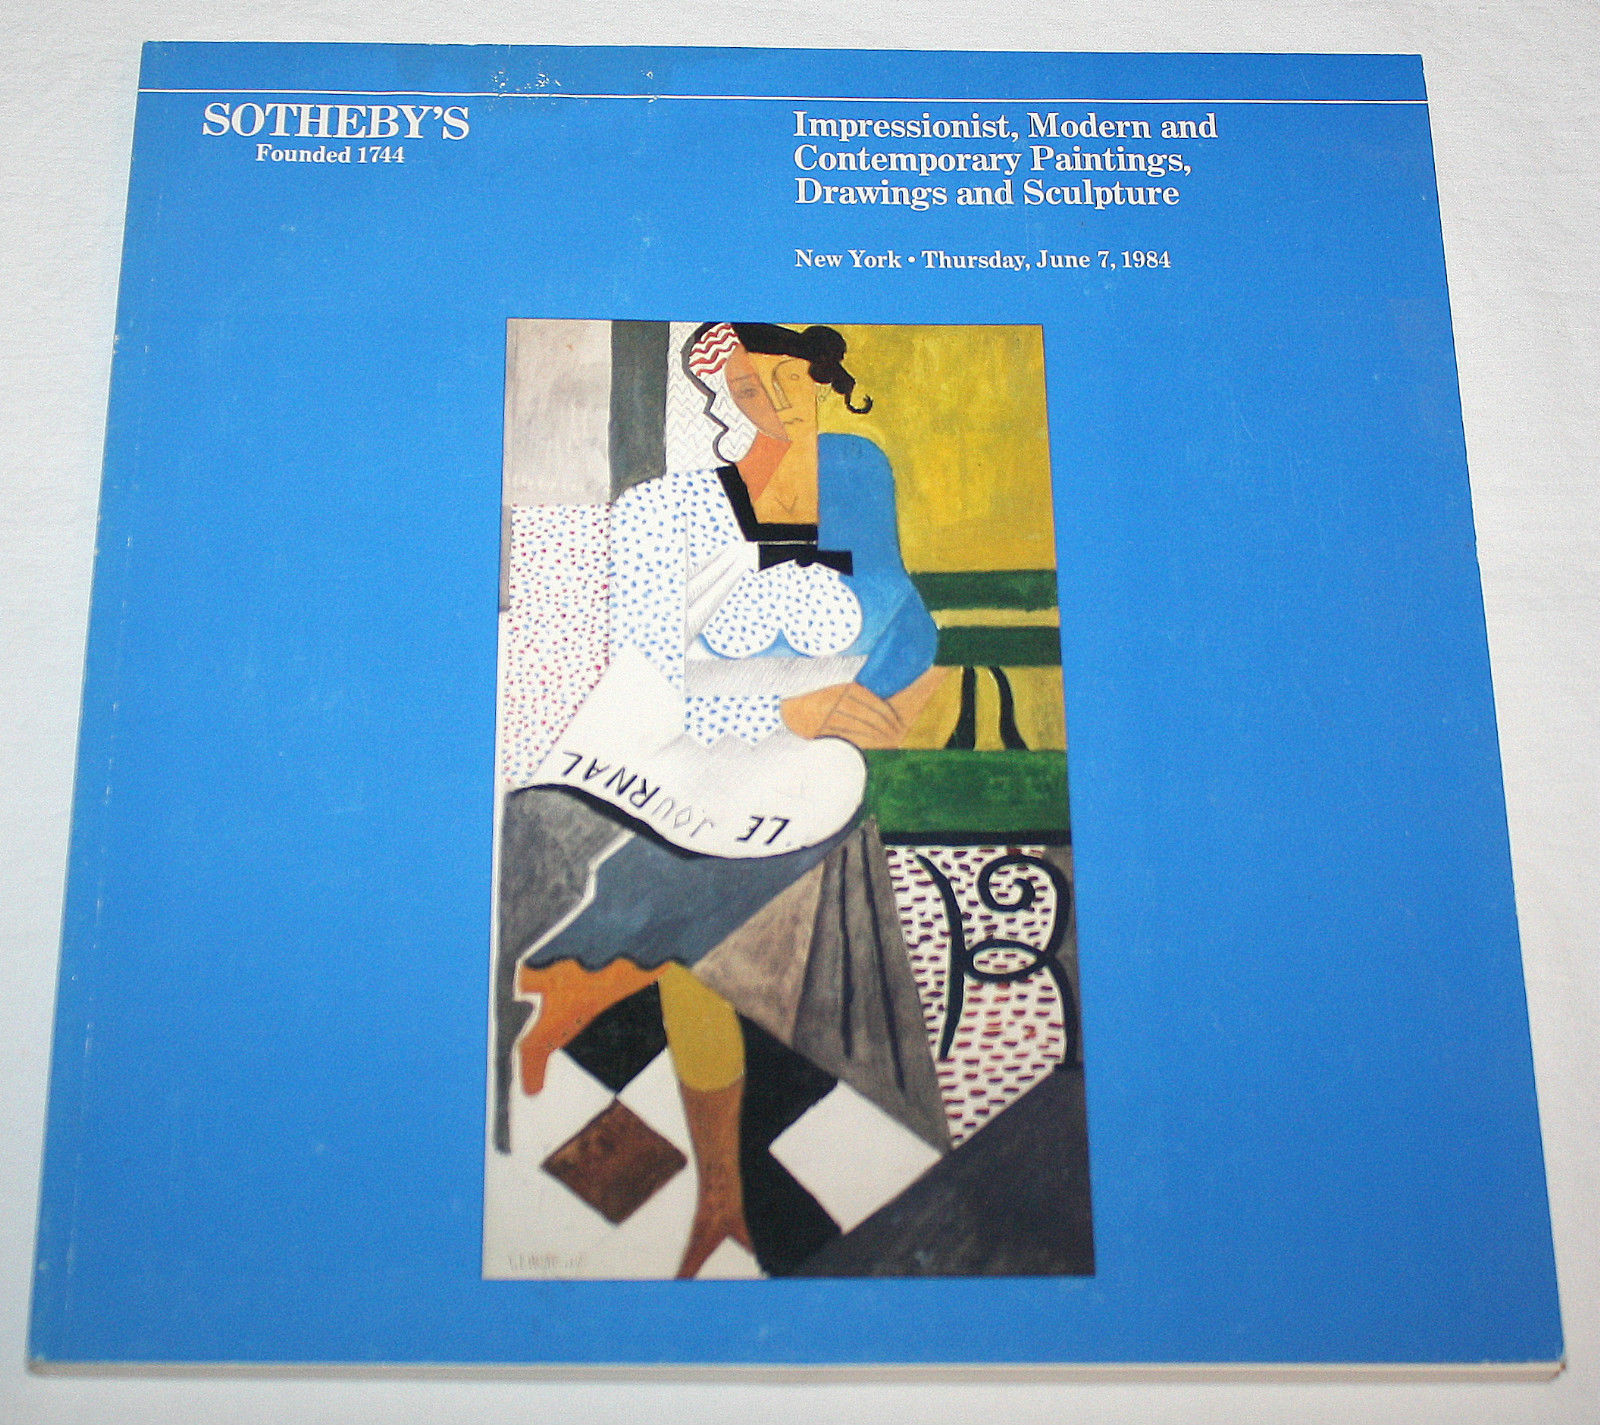 Sothebys Catalog Impressionist Modern Contemporary Painting Drawing Sculpture 84